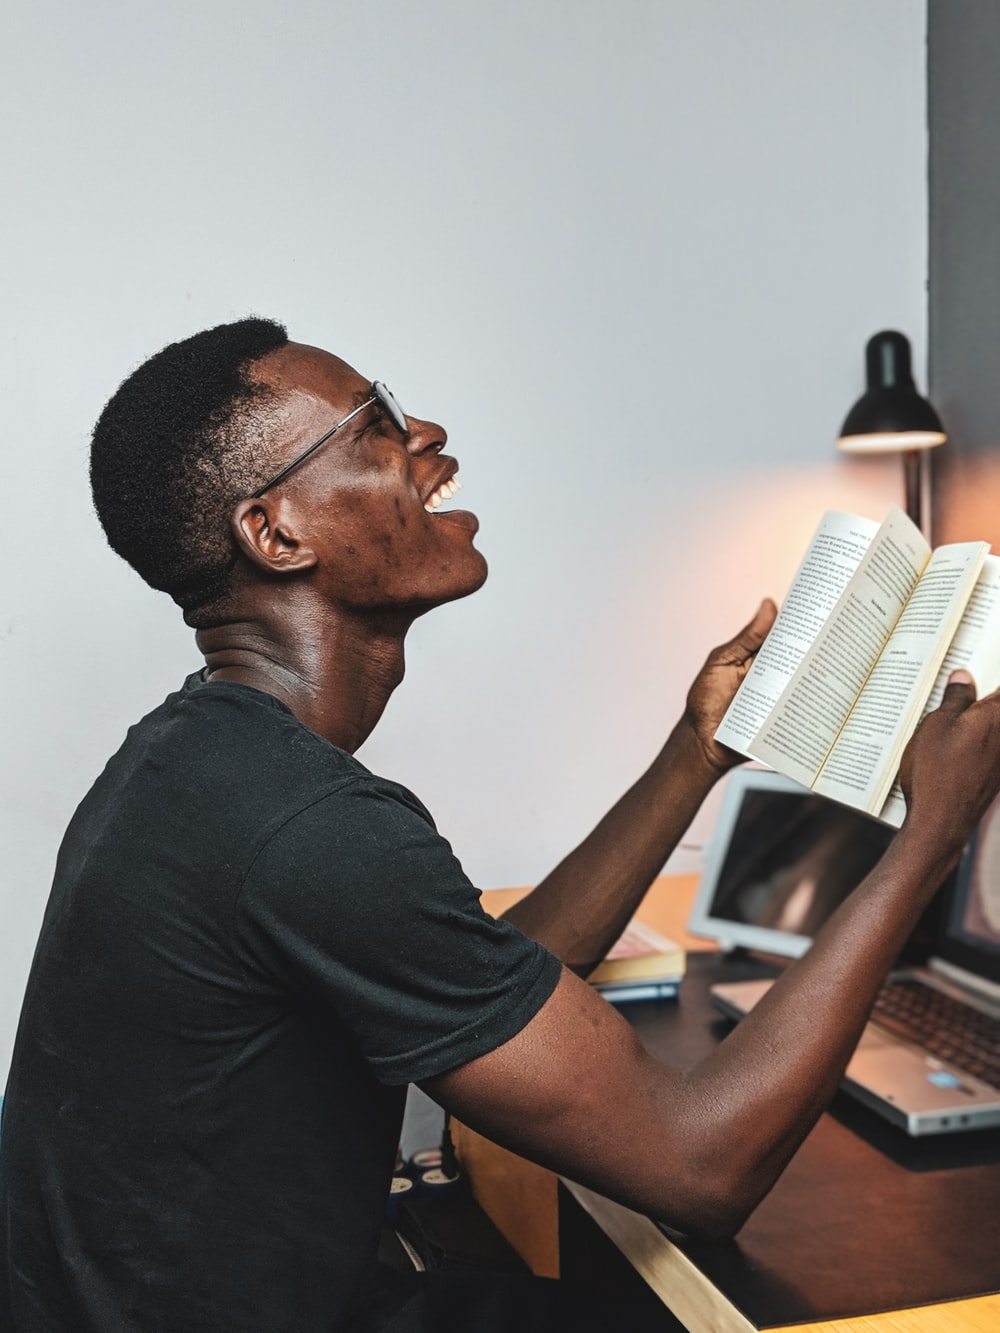 man reads book and smiles